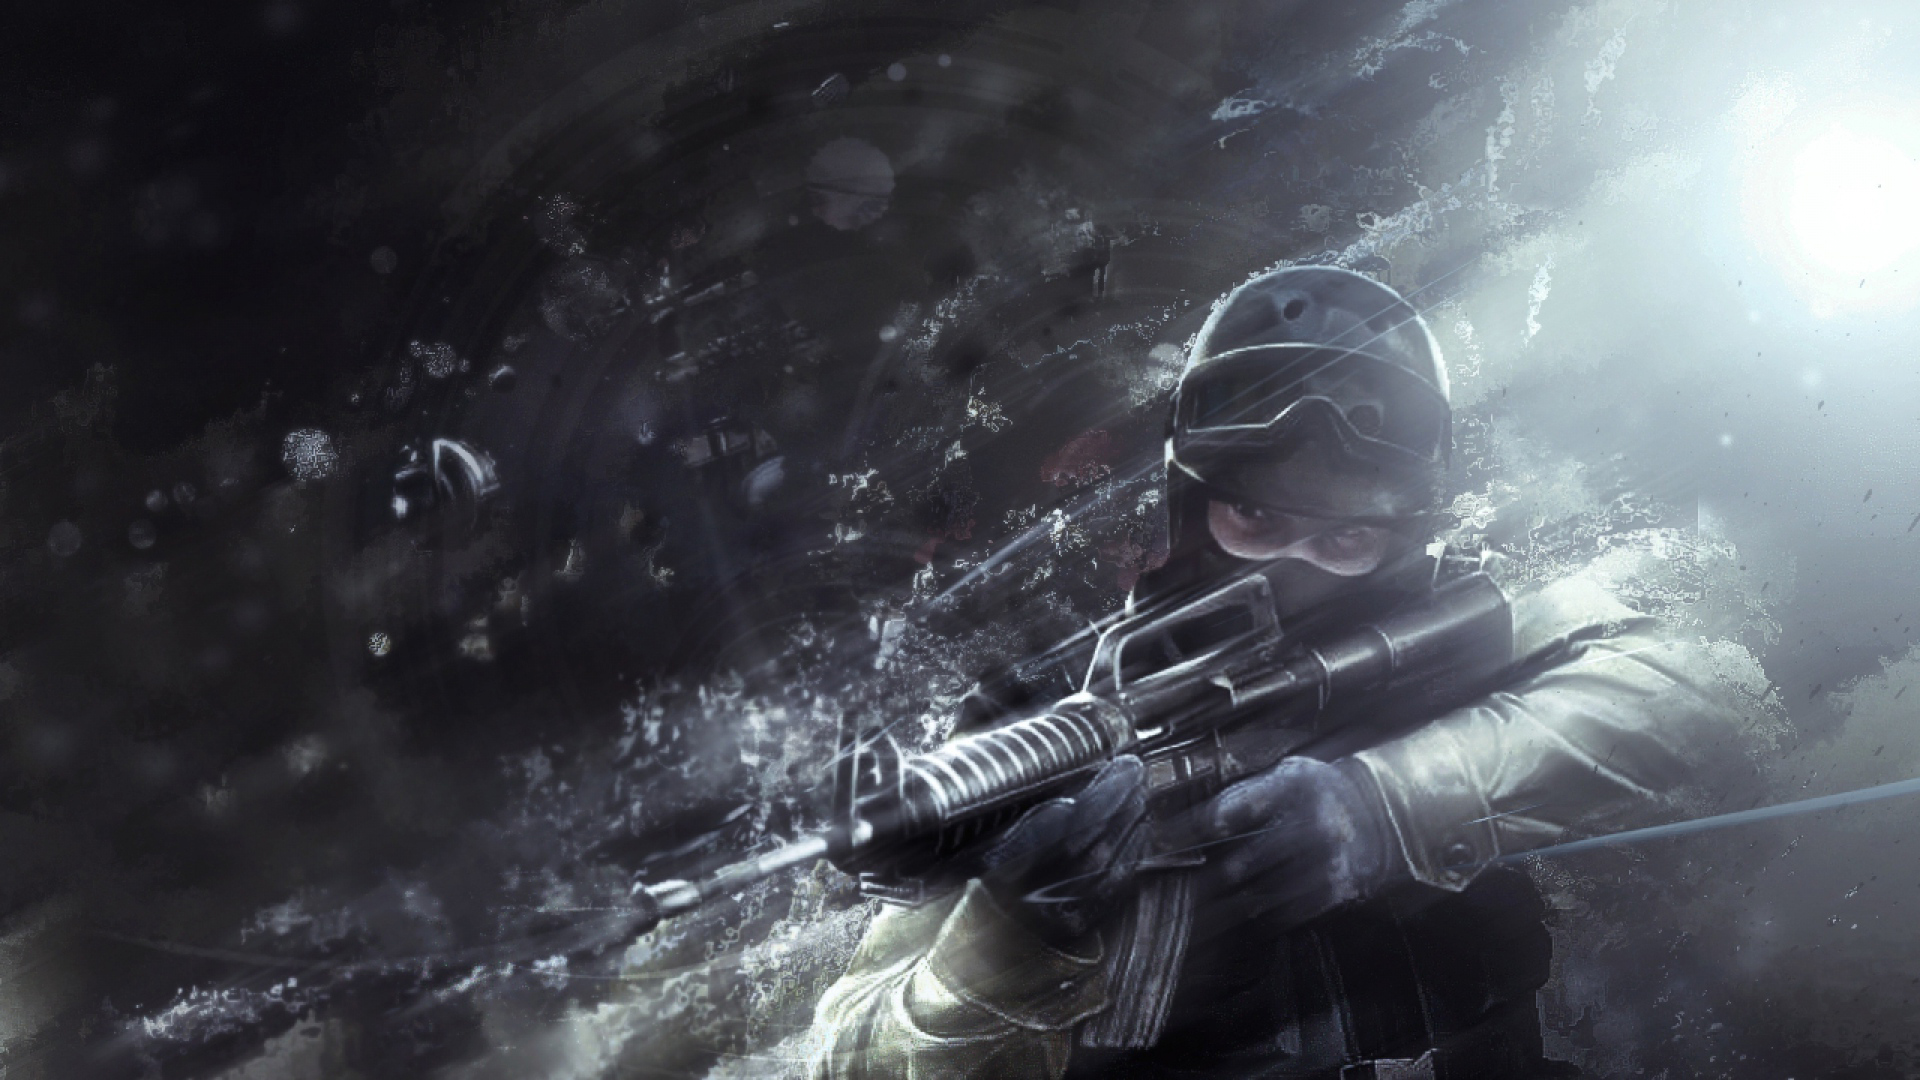 Counter Strike Wallpaper Cool Counter Strike Backgrounds 1920x1080